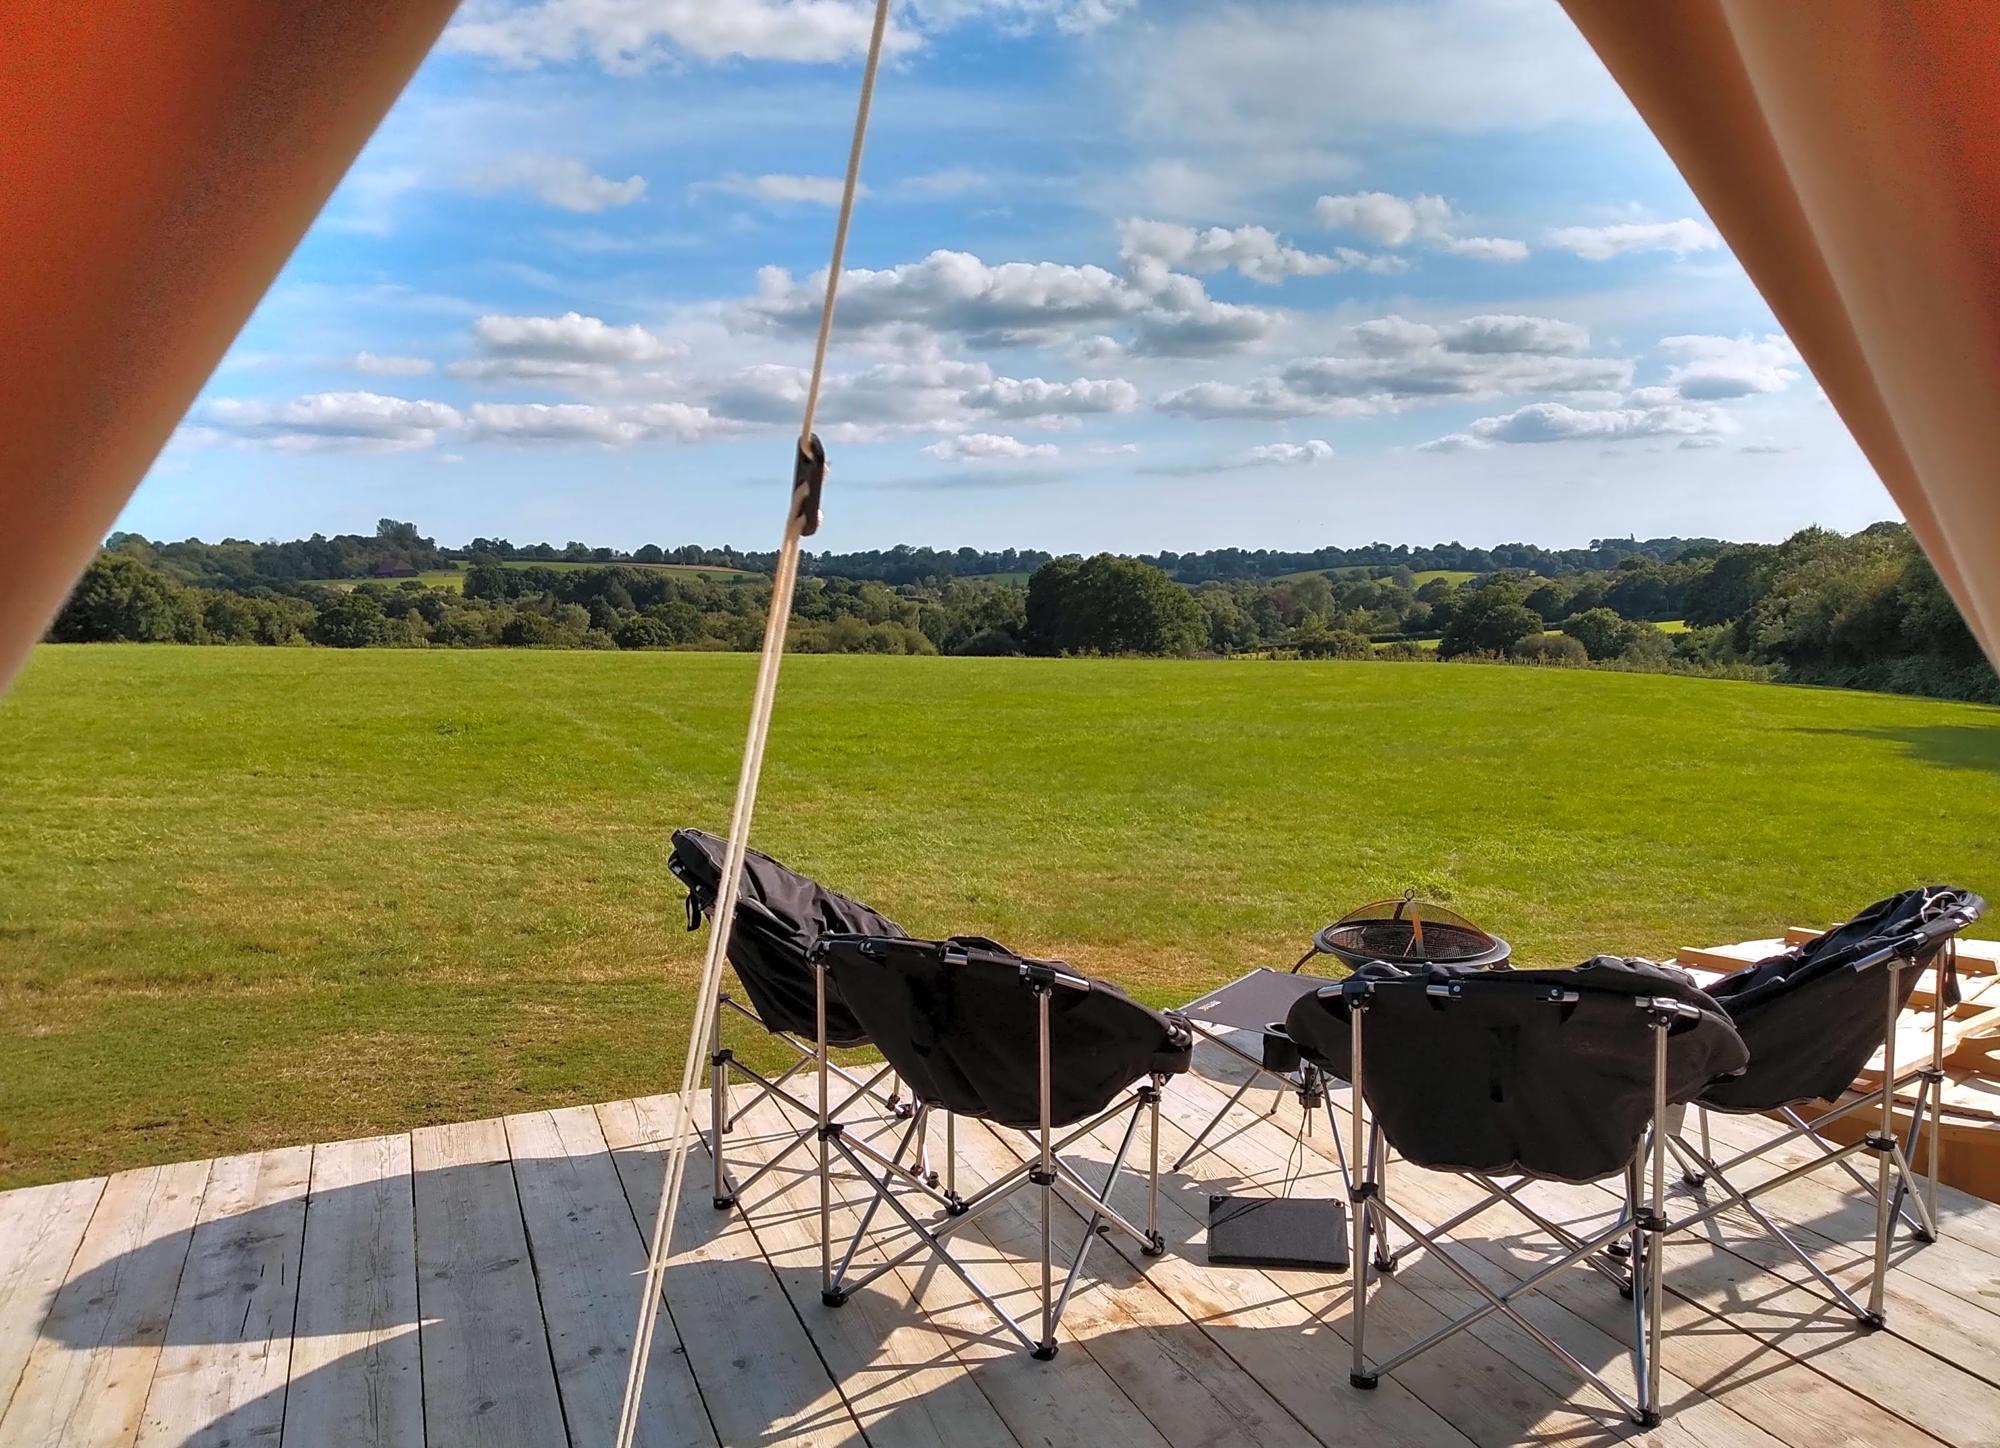 Campsites in Uckfield – Cool Camping